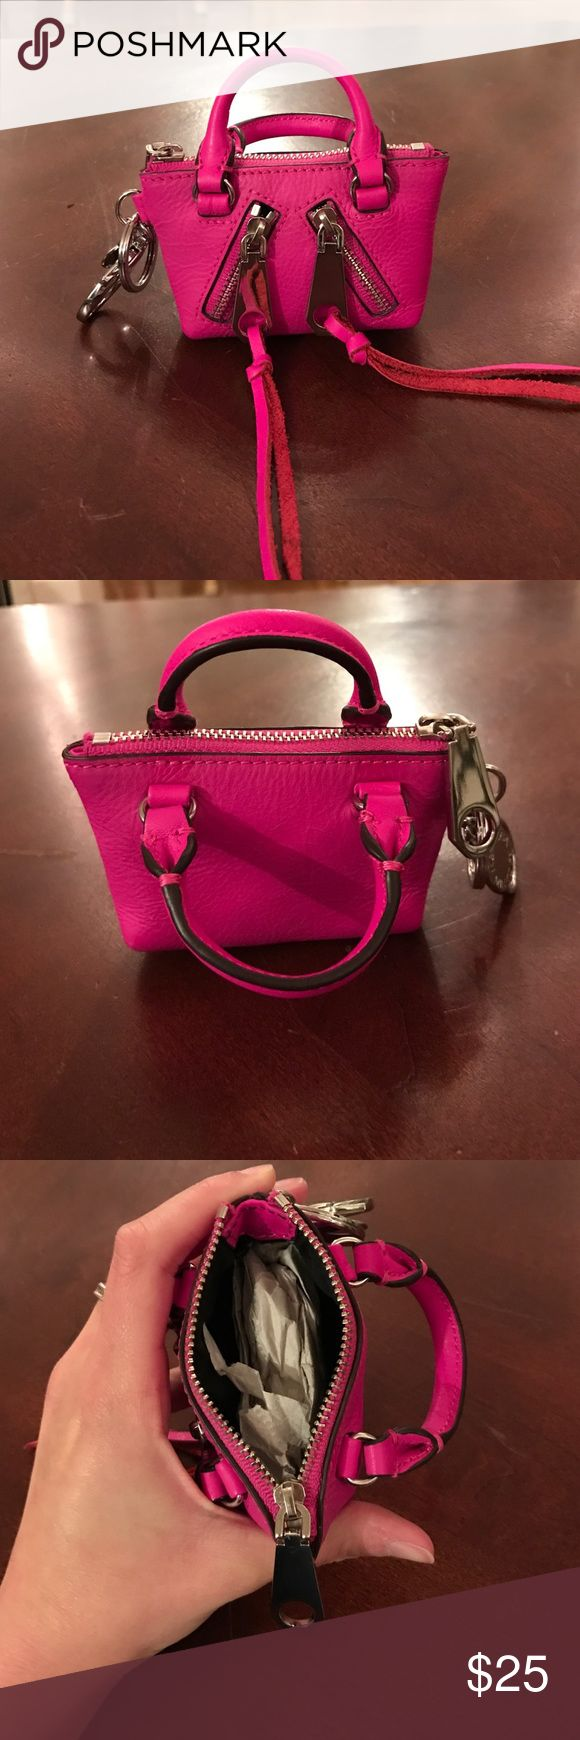 NWOT Rebecca Minkoff Mini Bag Key Chain Never used! New Rebecca Minkoff pink bag key chain!! Cutest little usable bag key chain! Also could be used as Mini change purse! No trades 🙅 make an offer!!!! Rebecca Minkoff Accessories Key & Card Holders